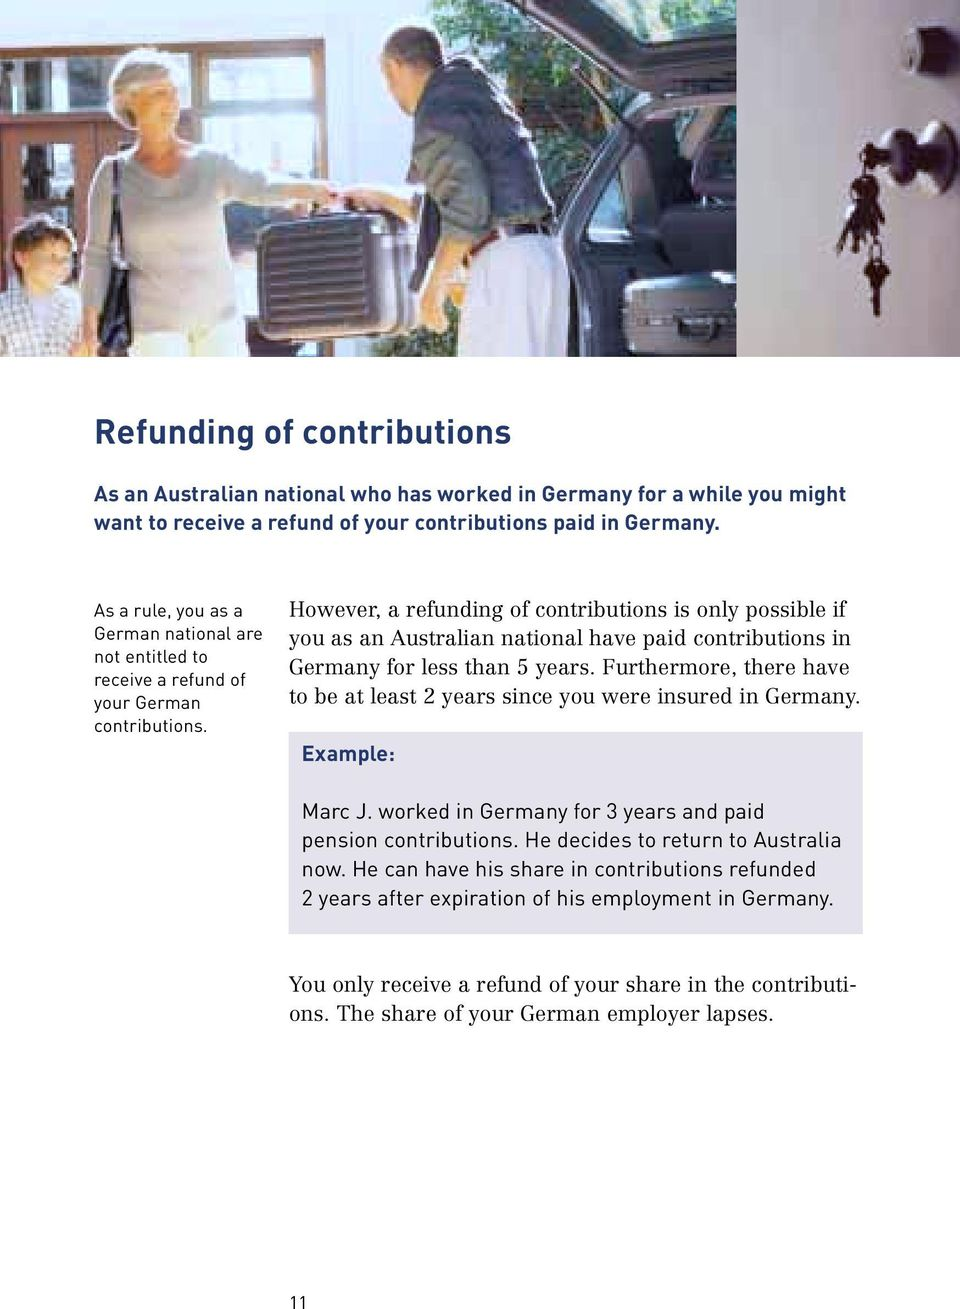 However, a refunding of contributions is only possible if you as an Australian national have paid contributions in Germany for less than 5 years.